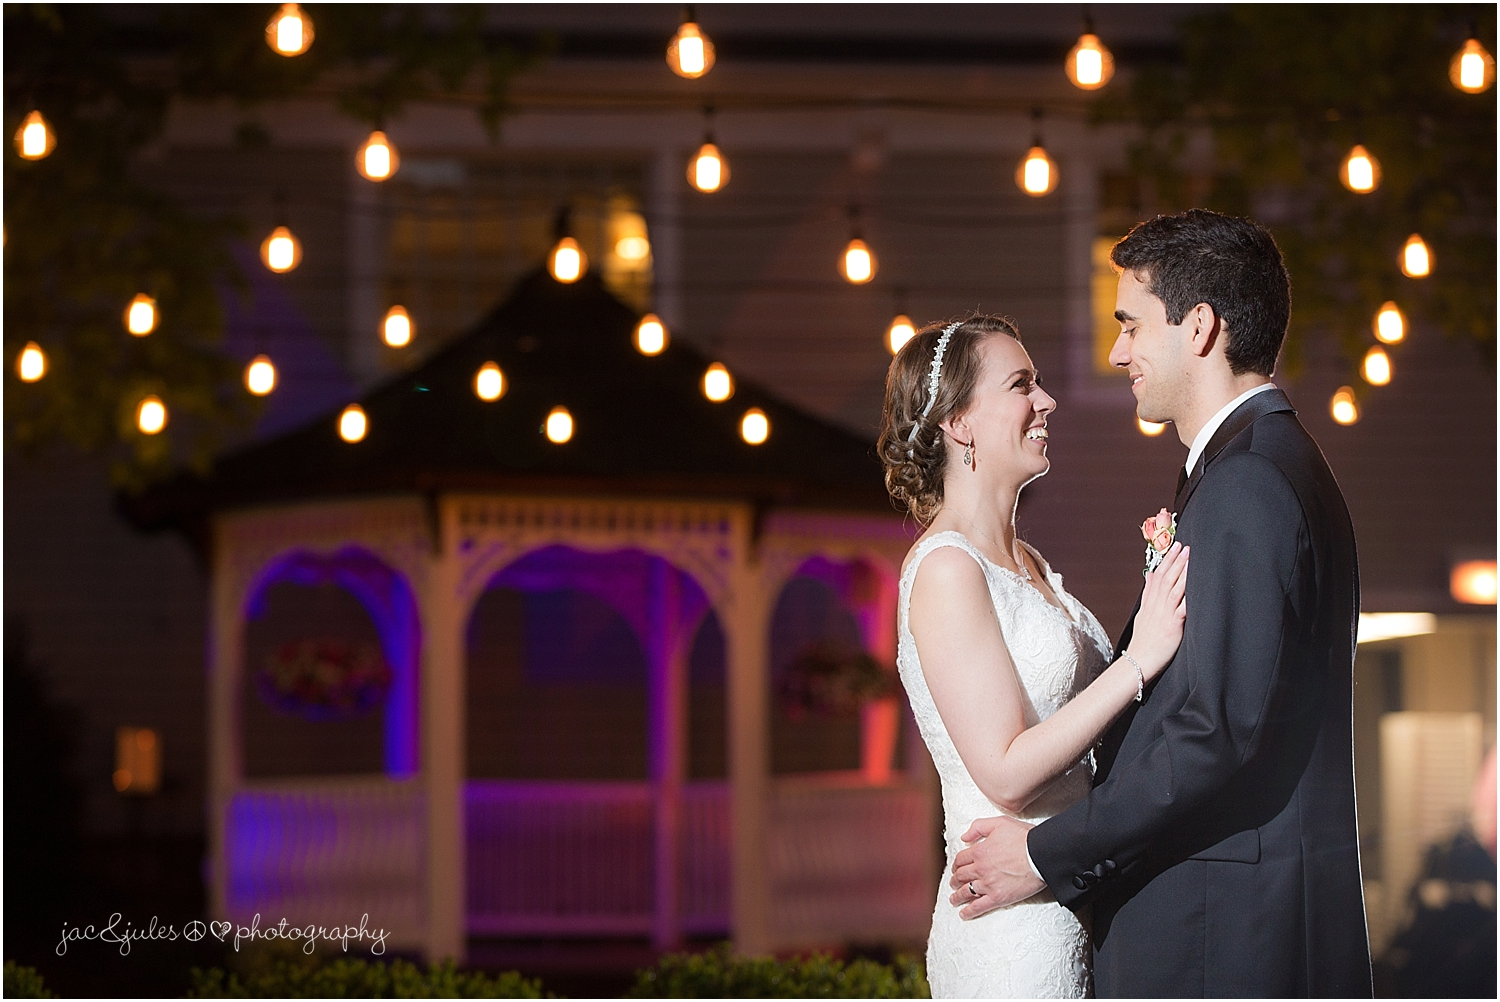 jacnjules takes a nighttime photo of the bride and groom at their wedding at olde mill inn in basking ridge nj